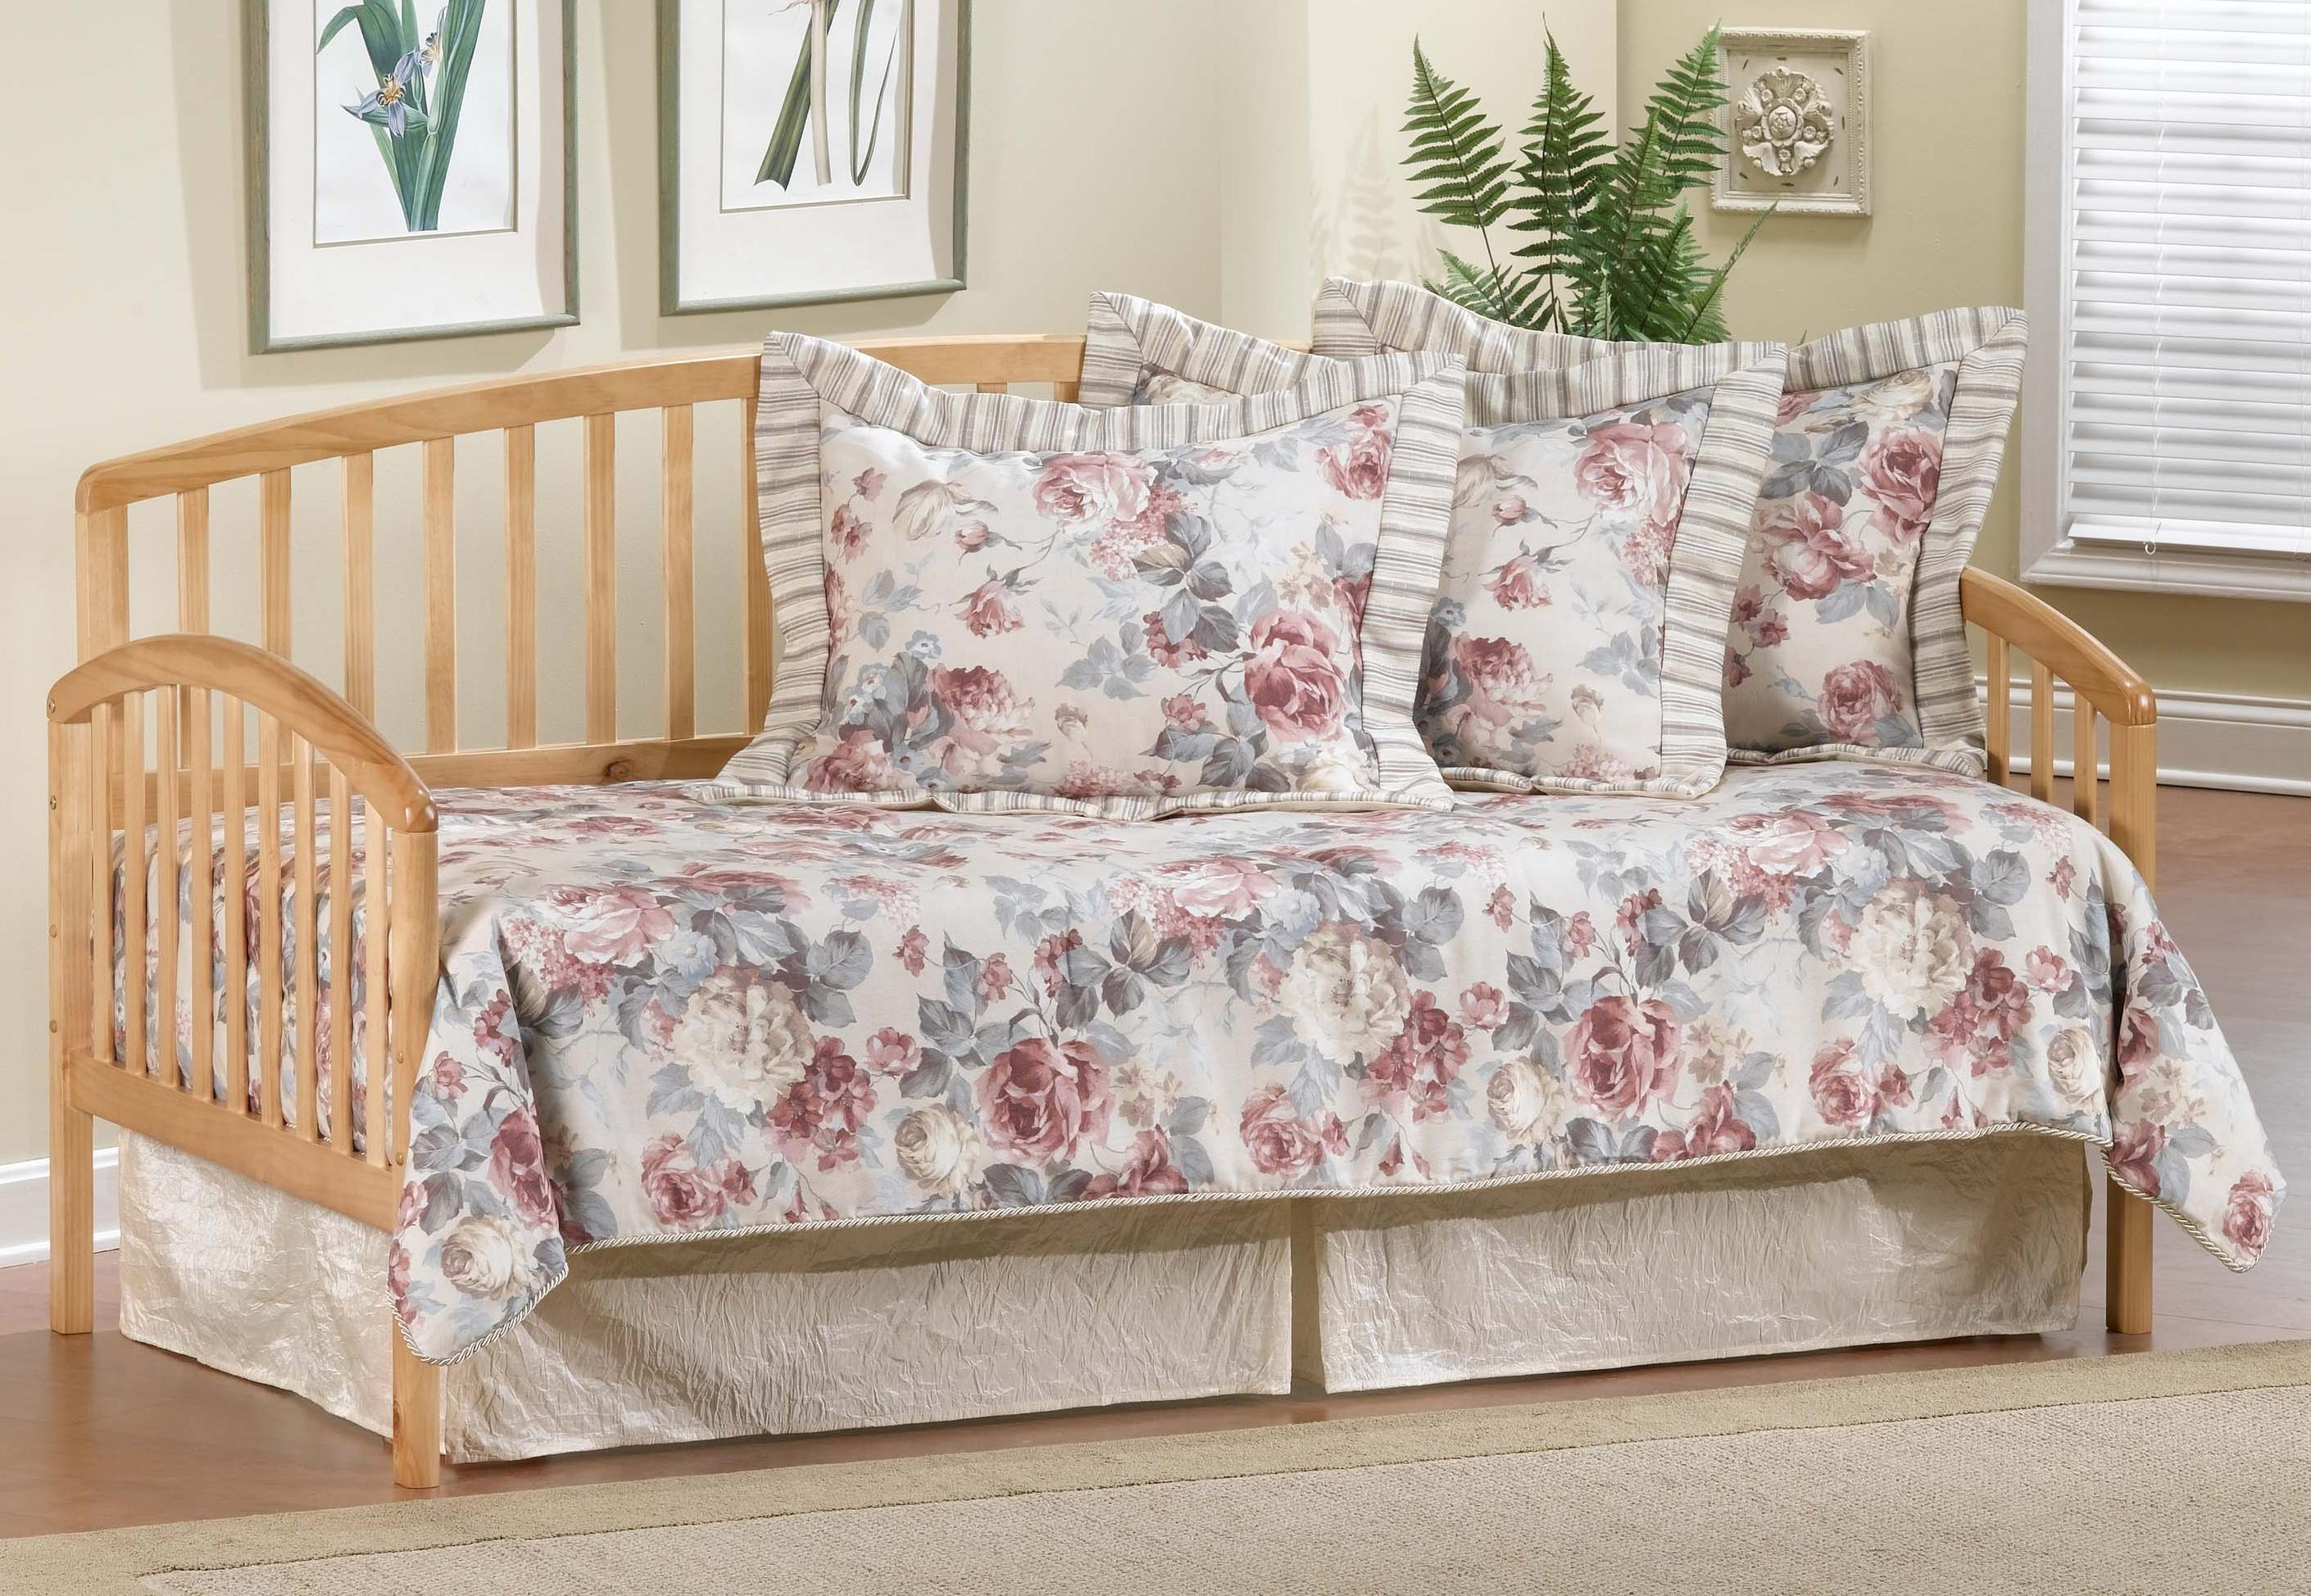 Hillsdale Daybeds Twin Carolina Daybed - Item Number: 1108DBLH